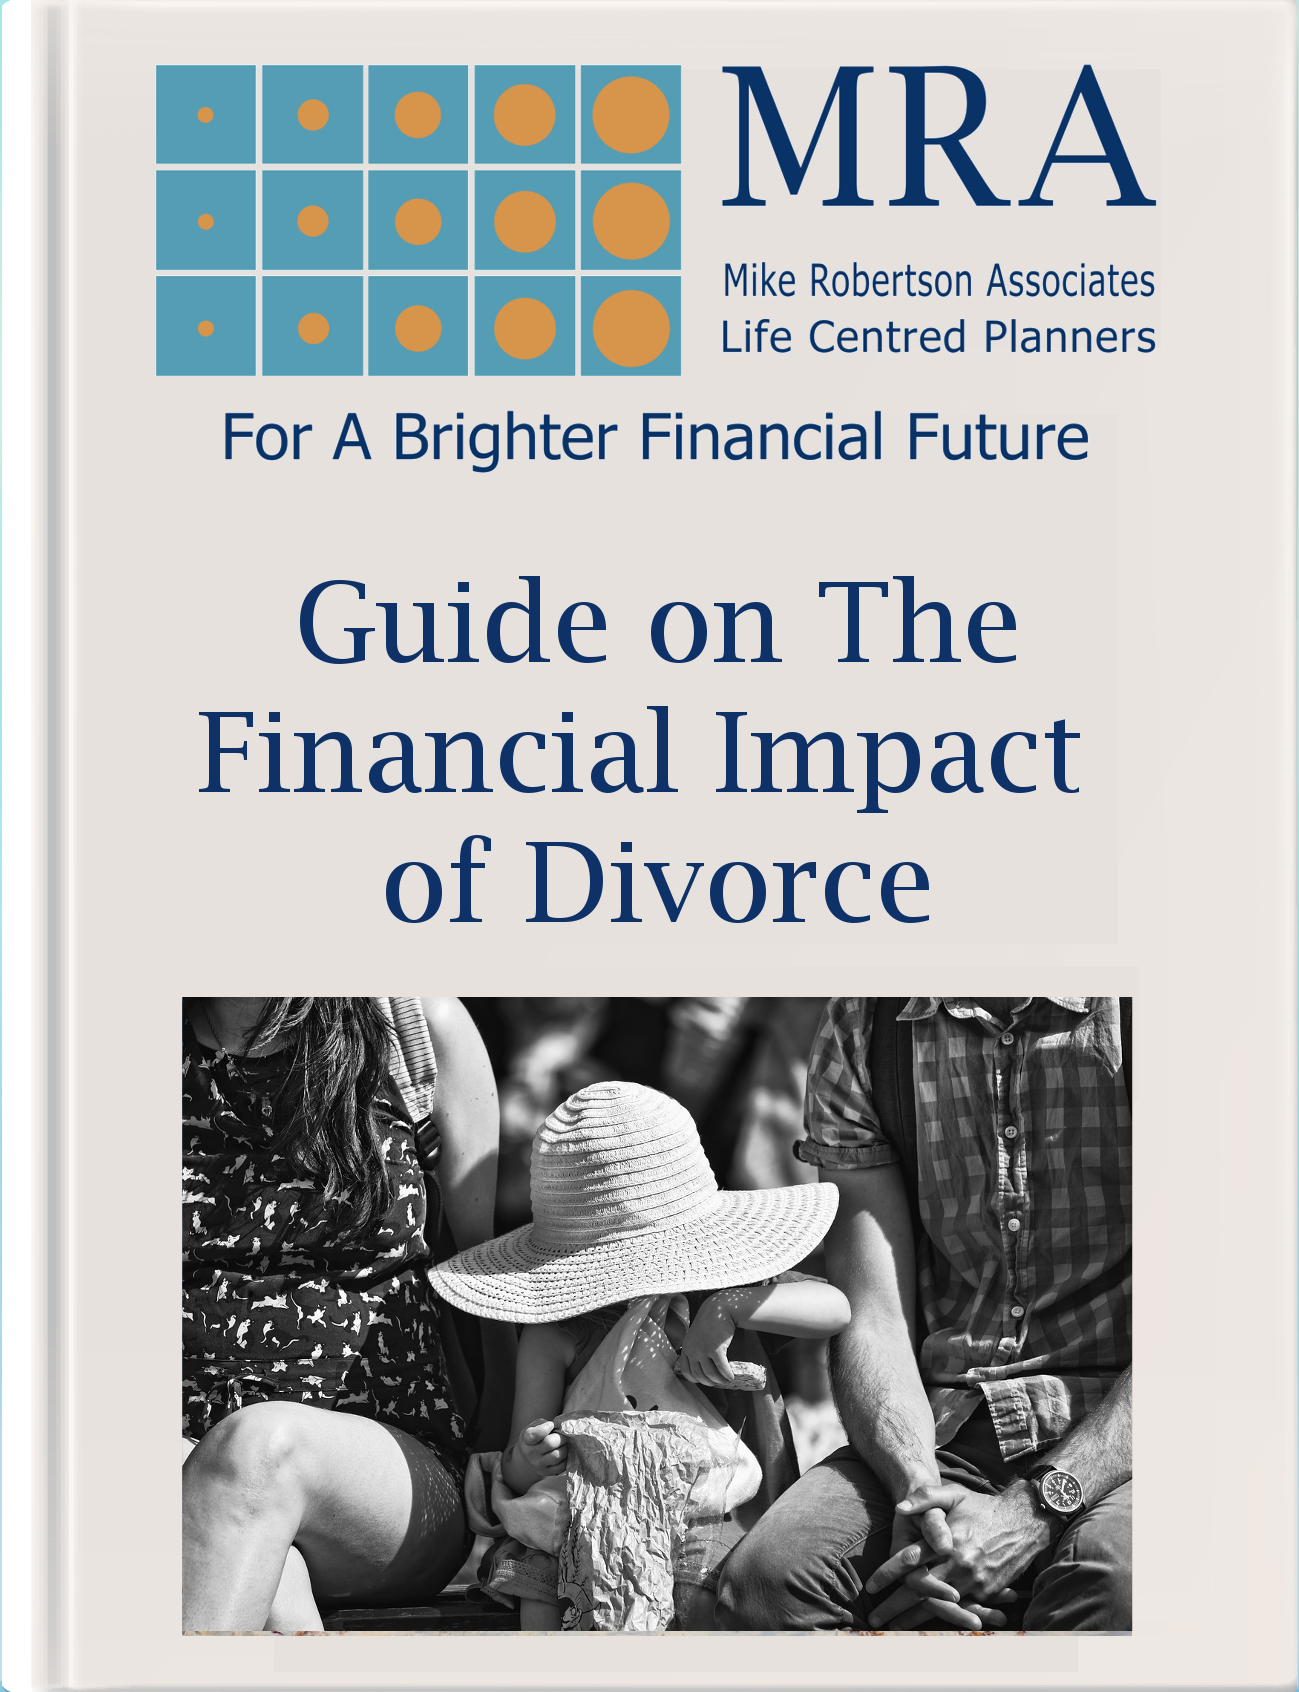 Download our Guide on the Financial Impact of Divorce